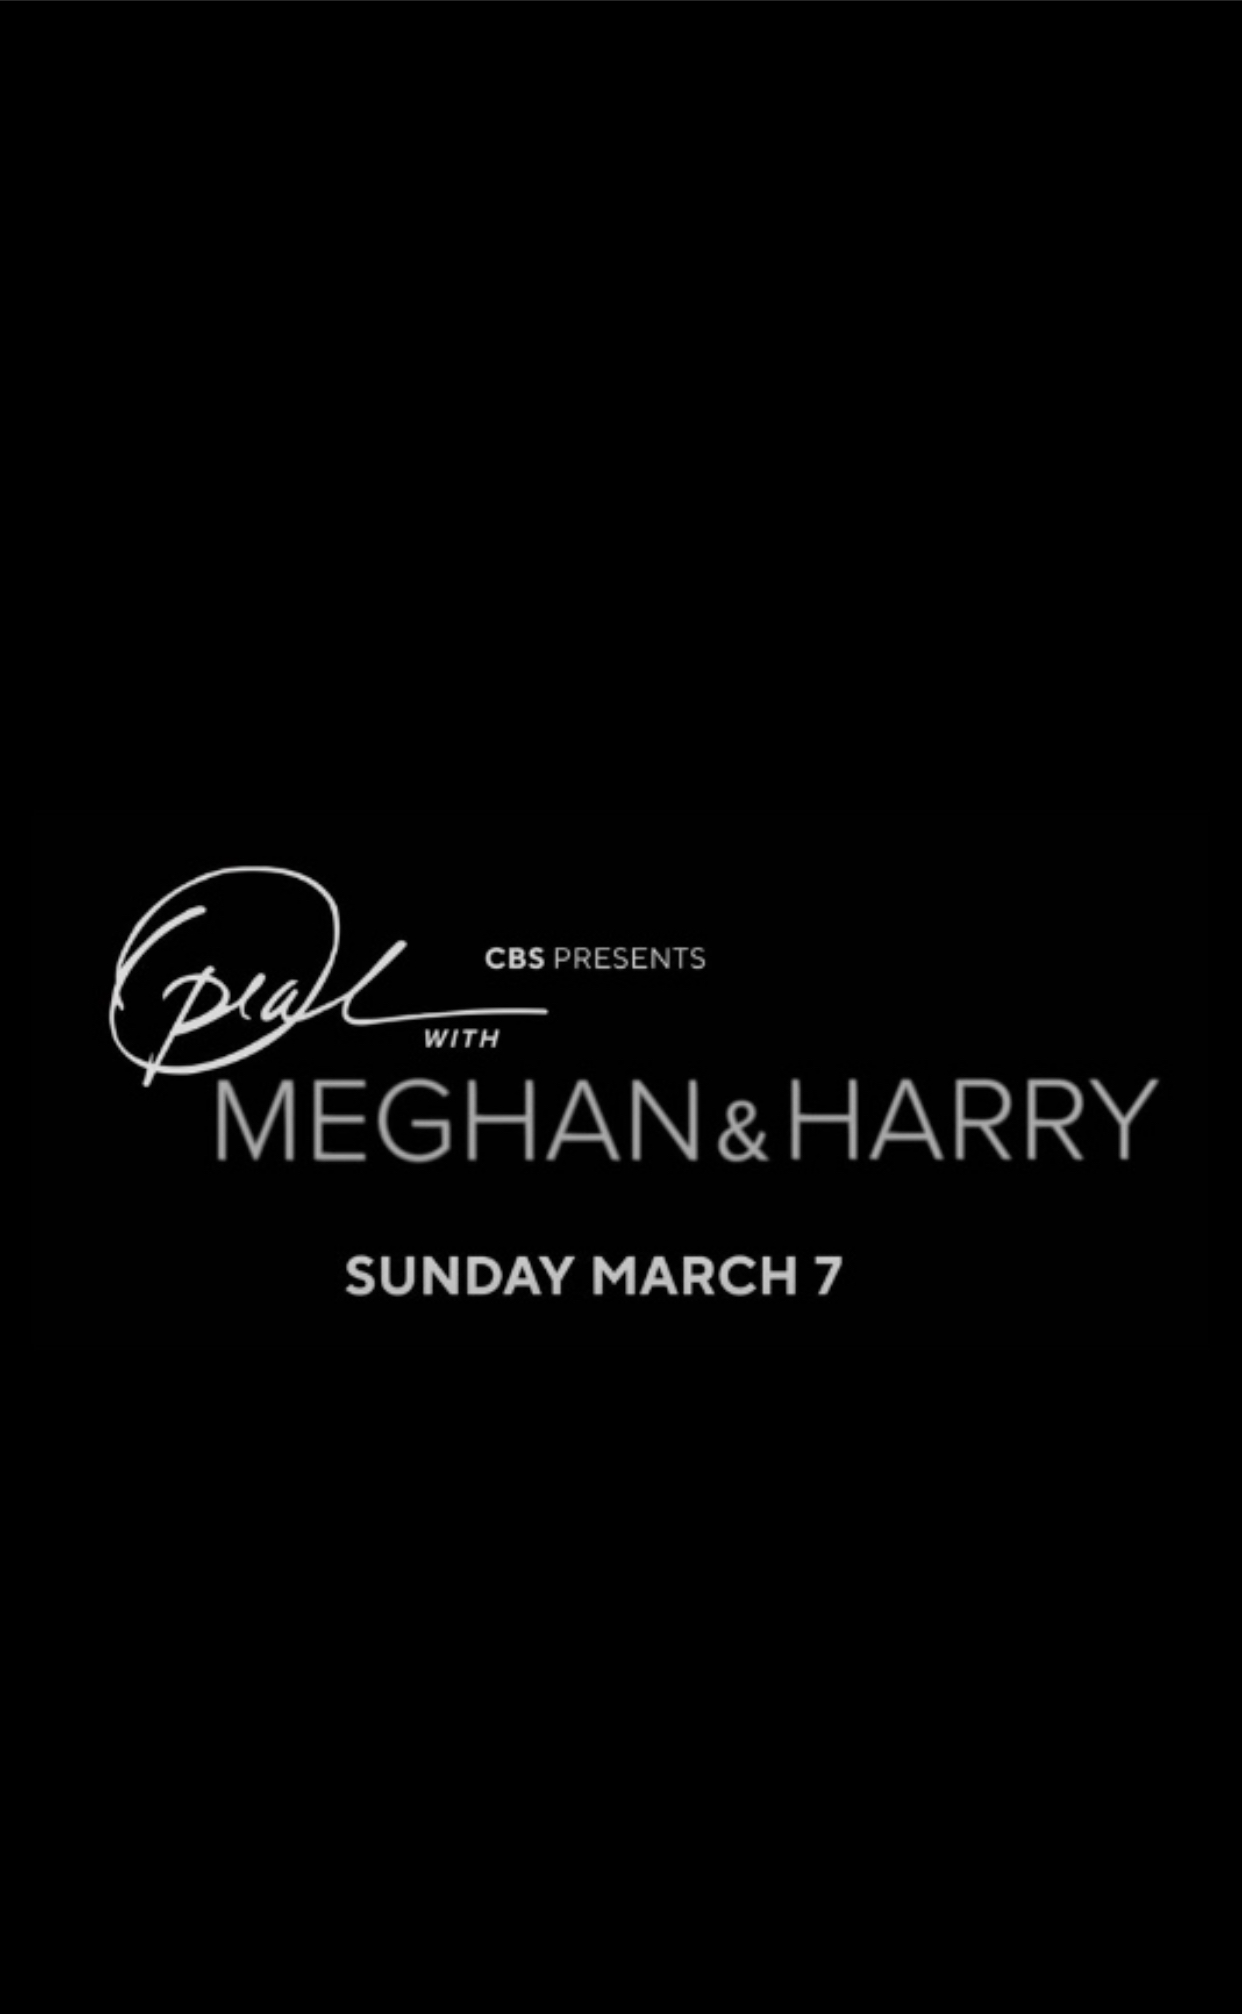 watch Oprah with Meghan and Harry: A CBS Primetime Special on soap2day